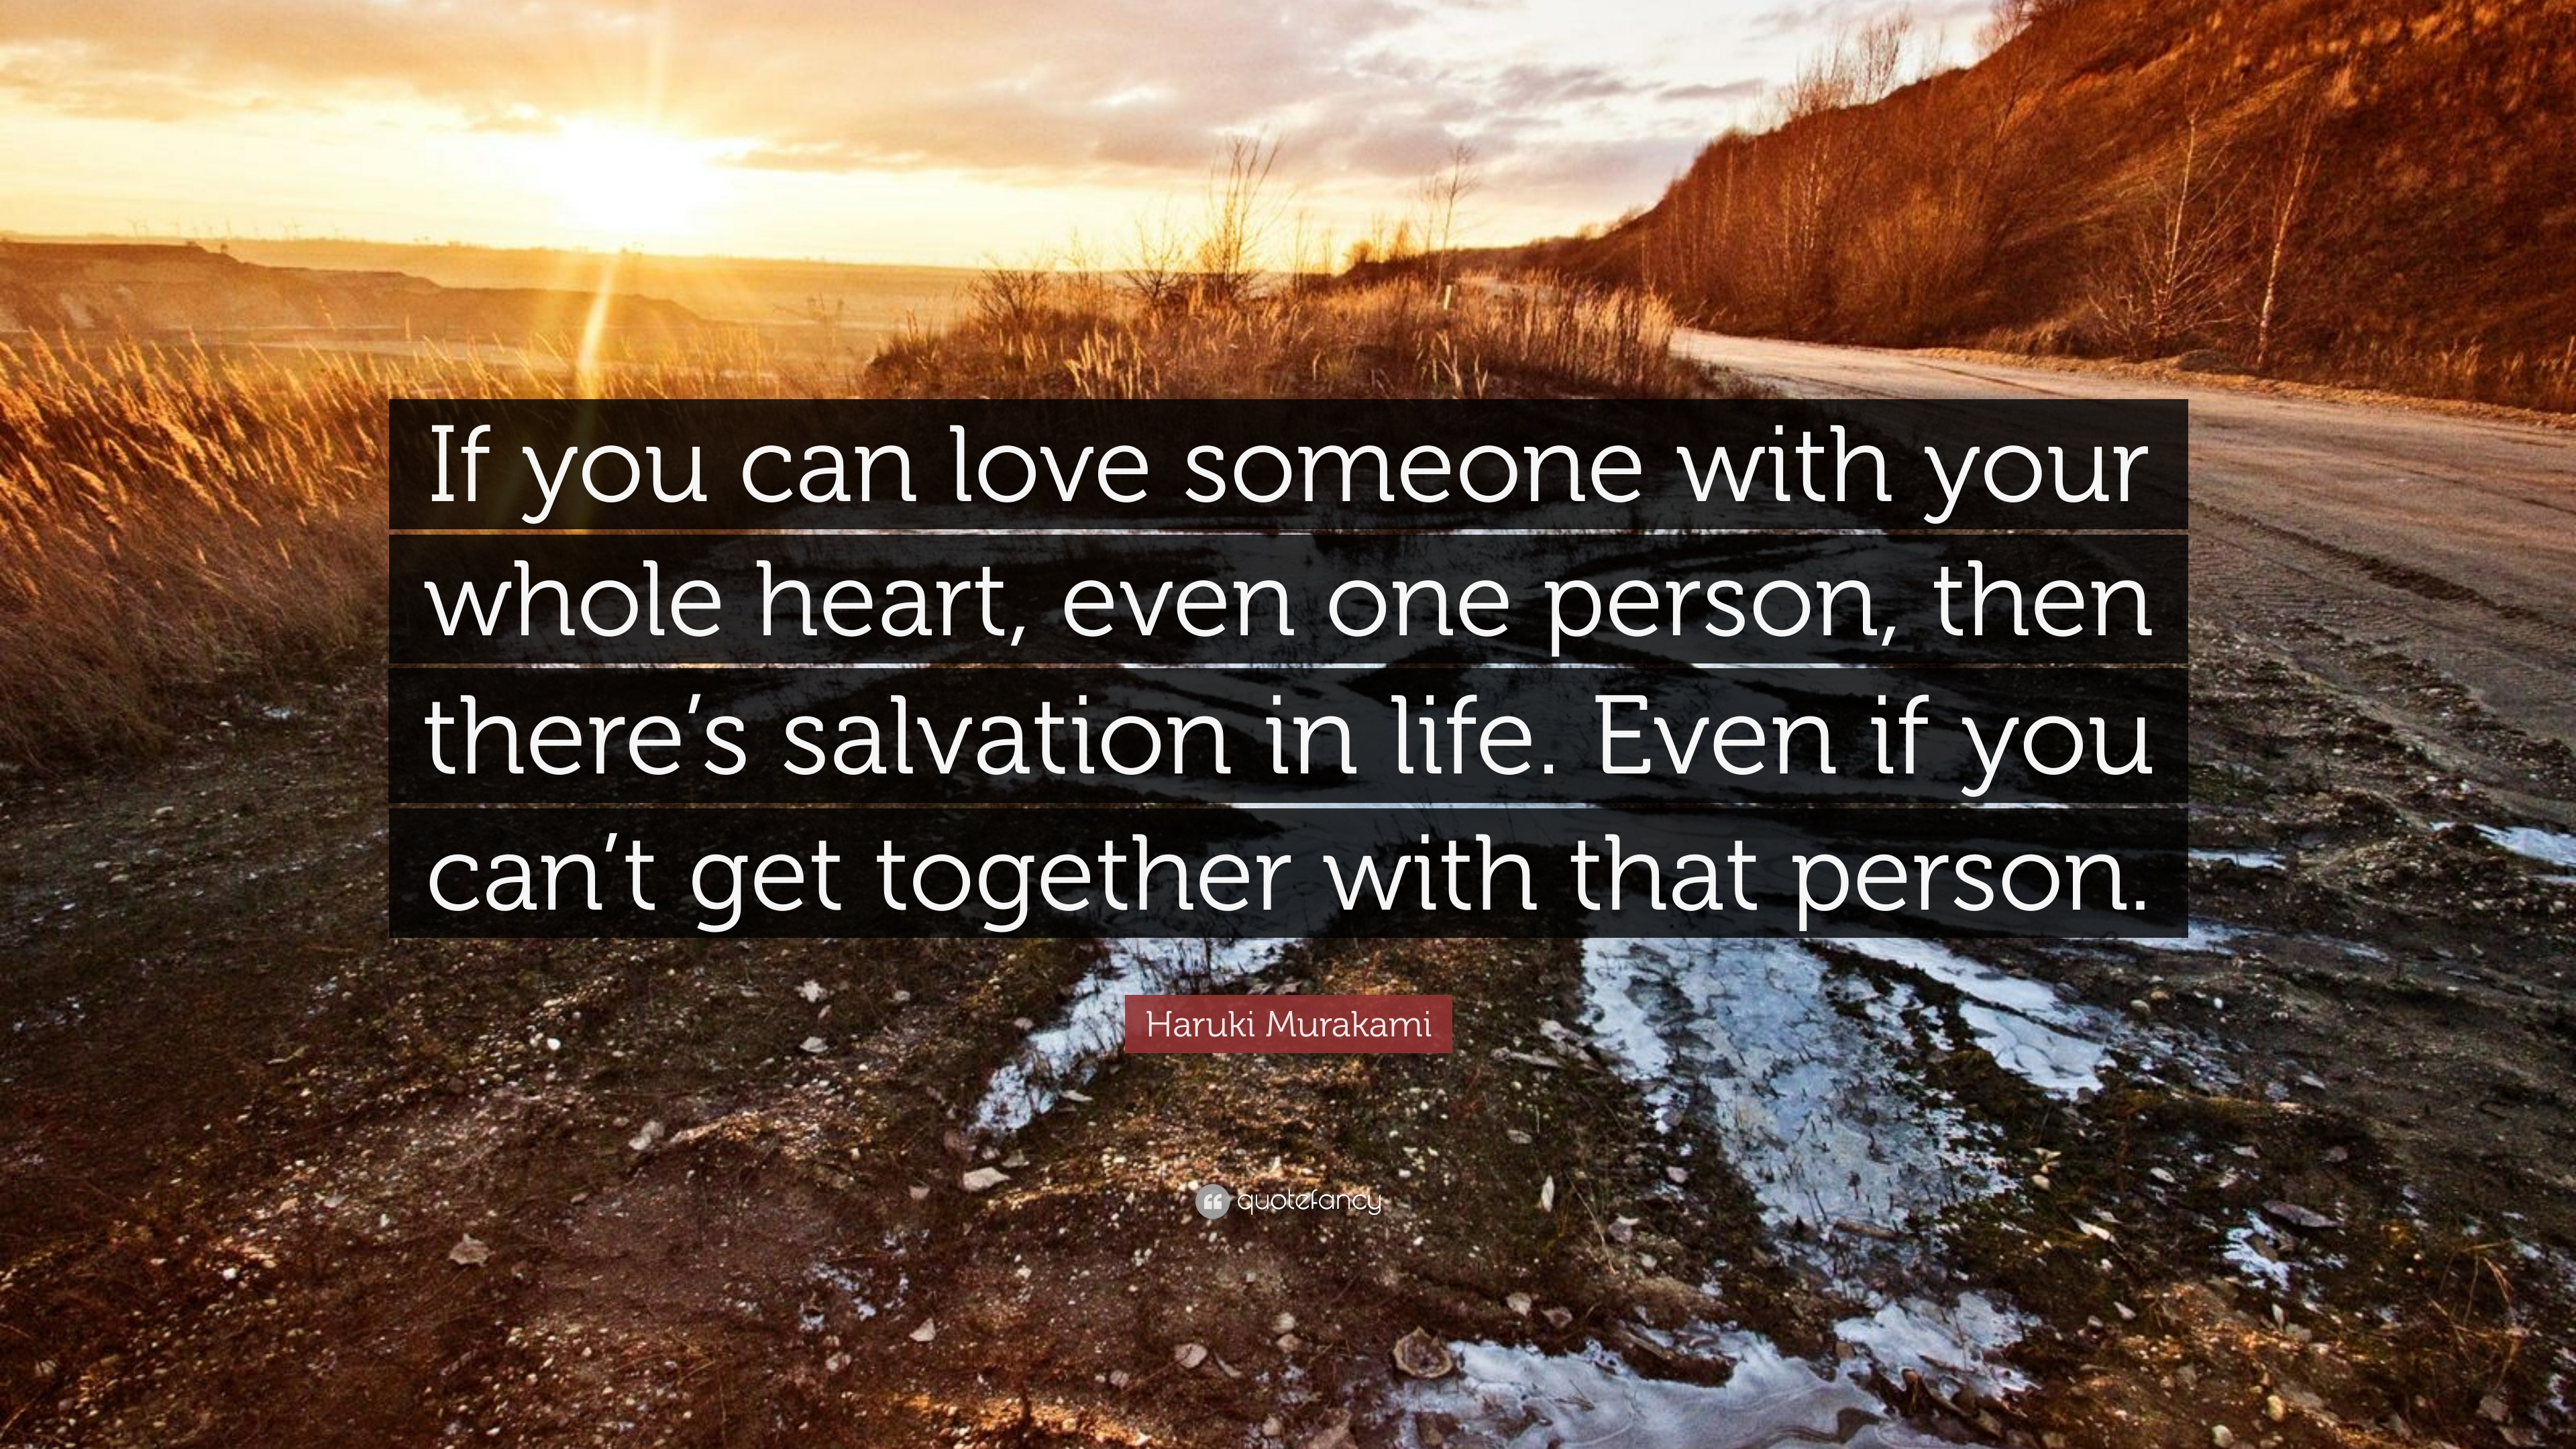 Haruki Murakami Quote If You Can Love Someone With Your Whole